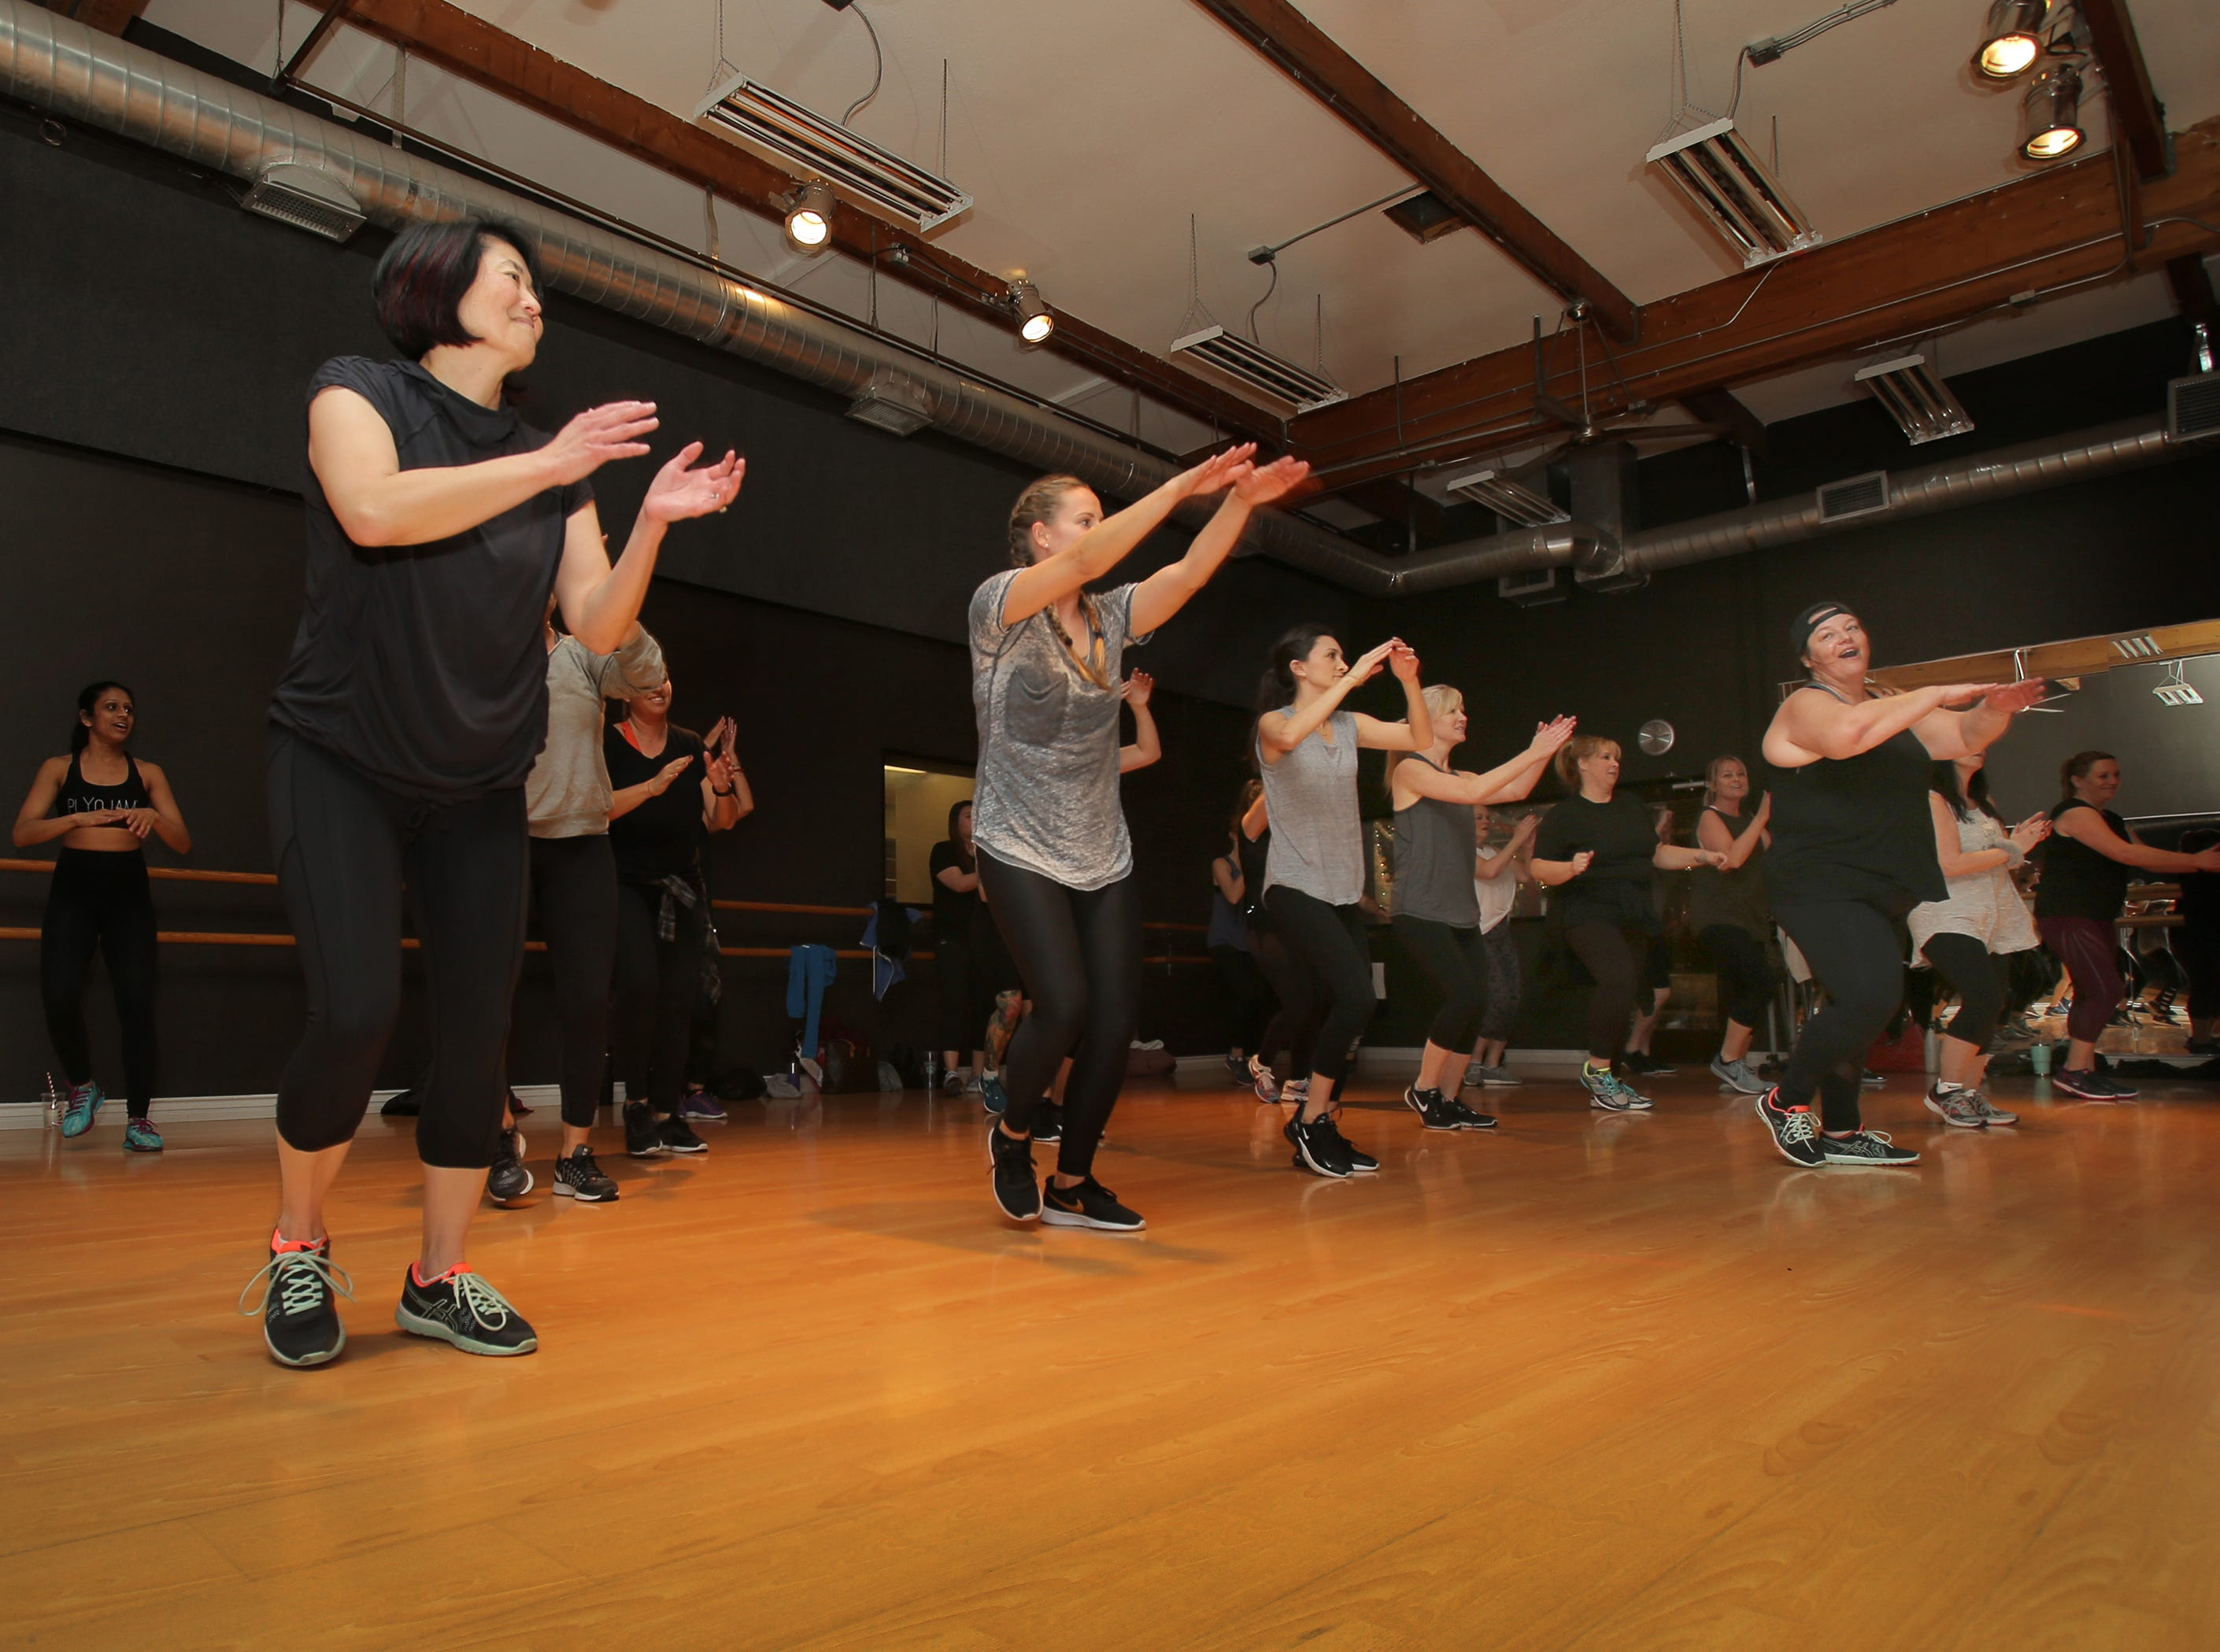 PlyoJam co-founder Stacey Beaman, right, leads her workout dance class at RockIt Dance Studio in Westlake Village. Beaman has organized a Dance 4 A Cause fitness benefit on Jan. 20 for victims of the Woolsey Fire and Borderline shooting.